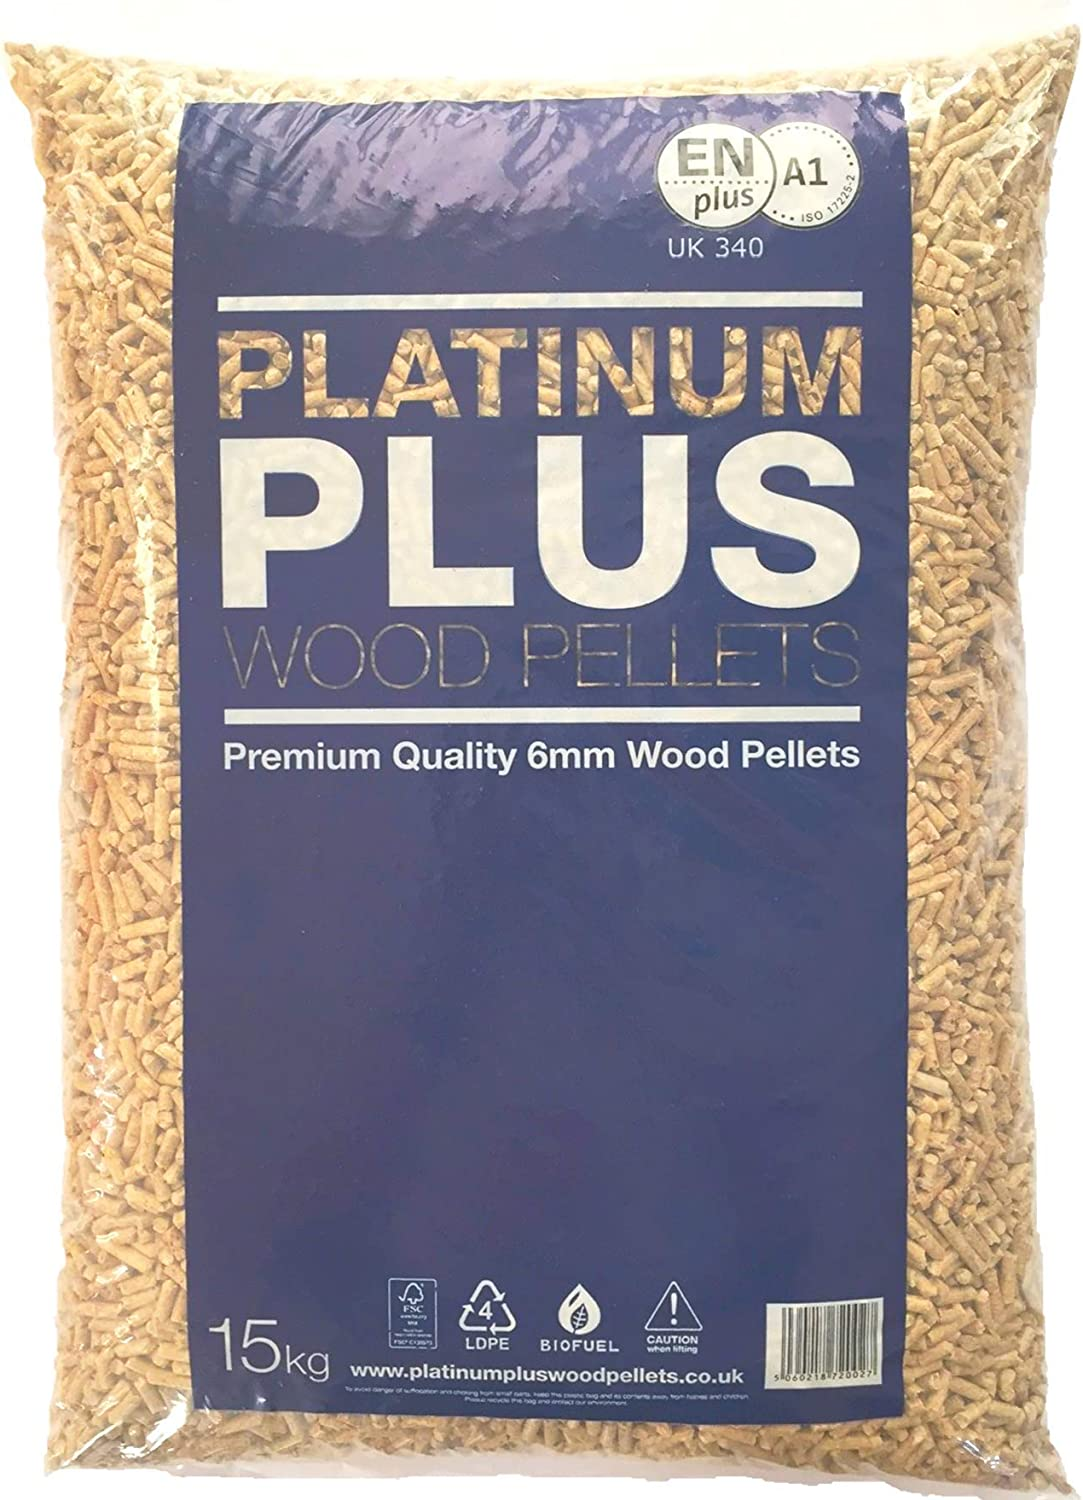 Platinum Plus Pellets de Madera 6mm EnplusA1 Pellets de biomasa 1x 15Kg